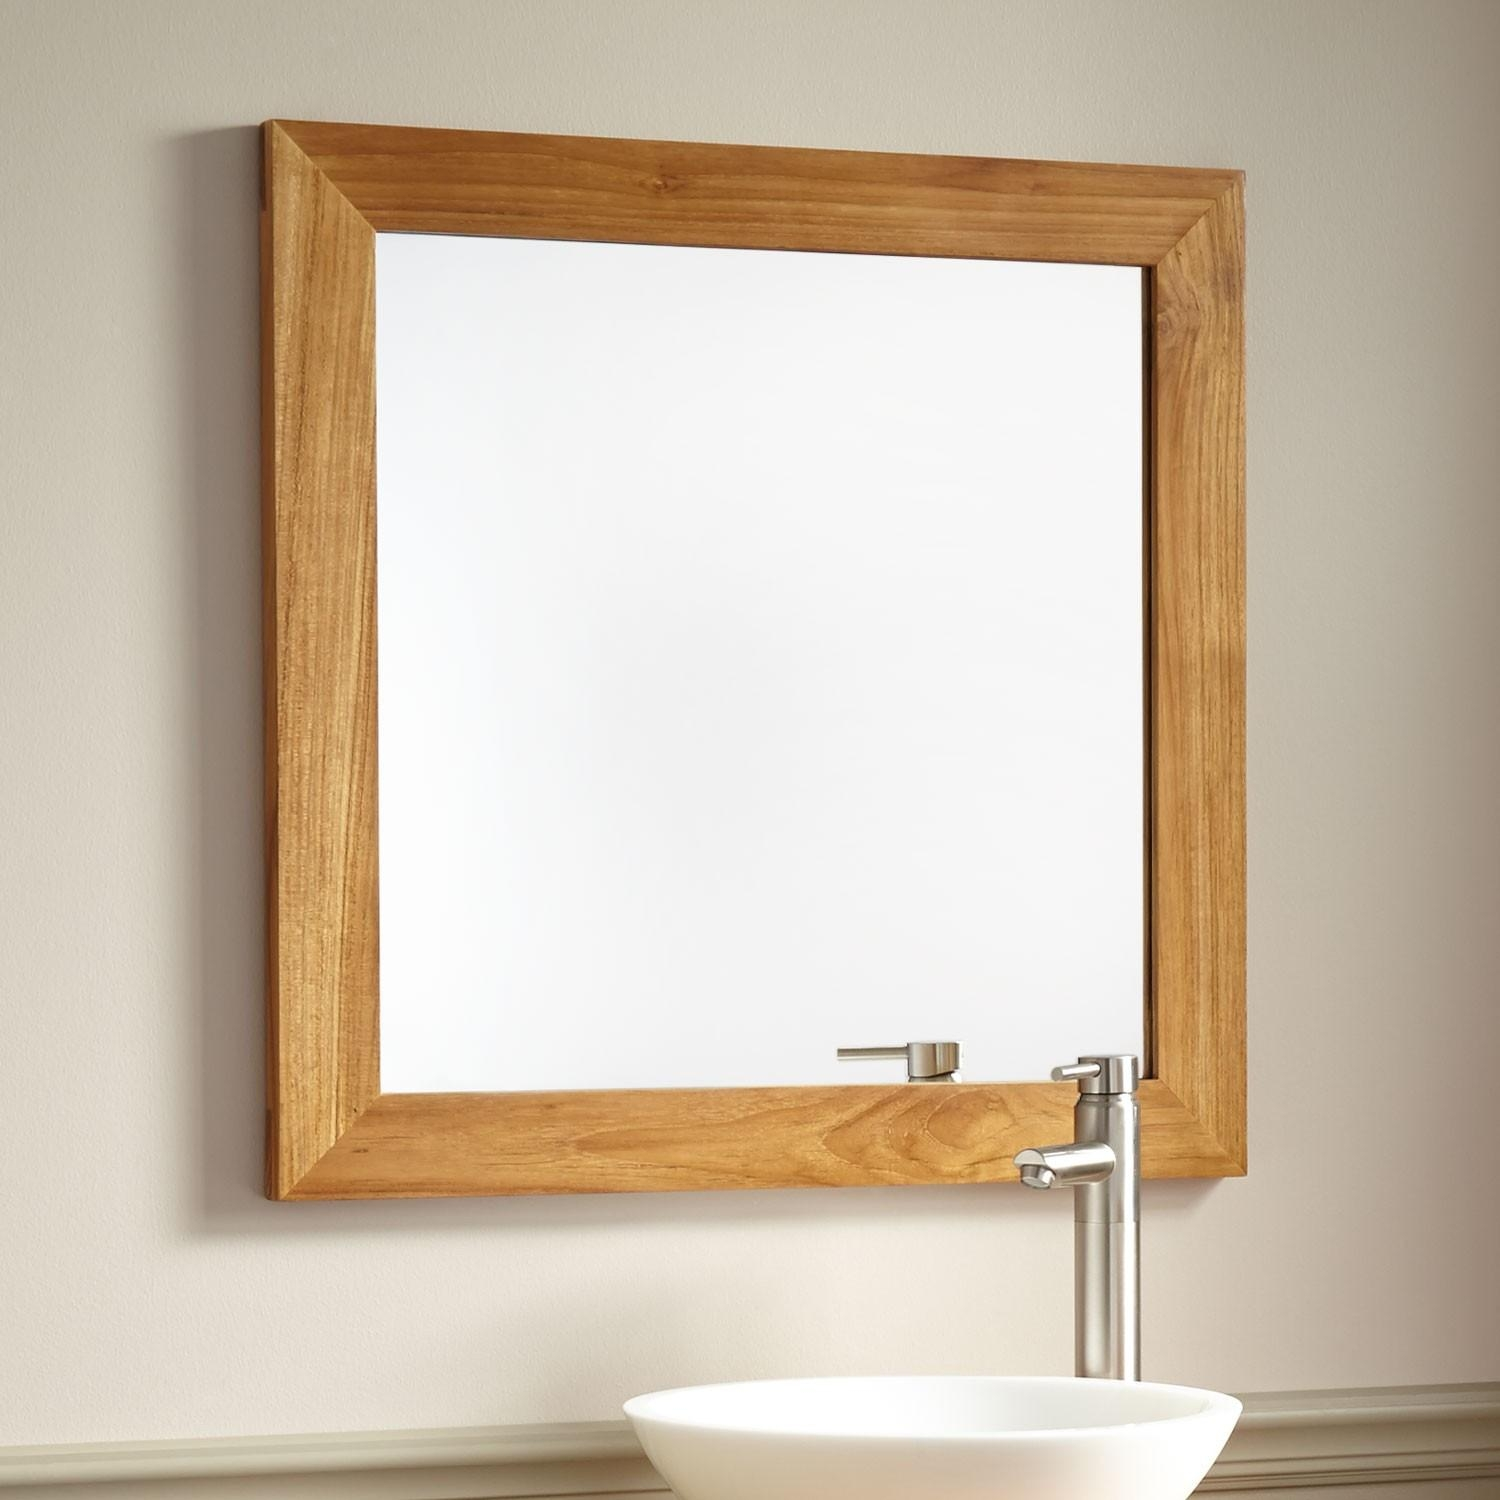 wooden framed mirrors for bathroom 20 inspirations wood framed mirrors mirror ideas 24730